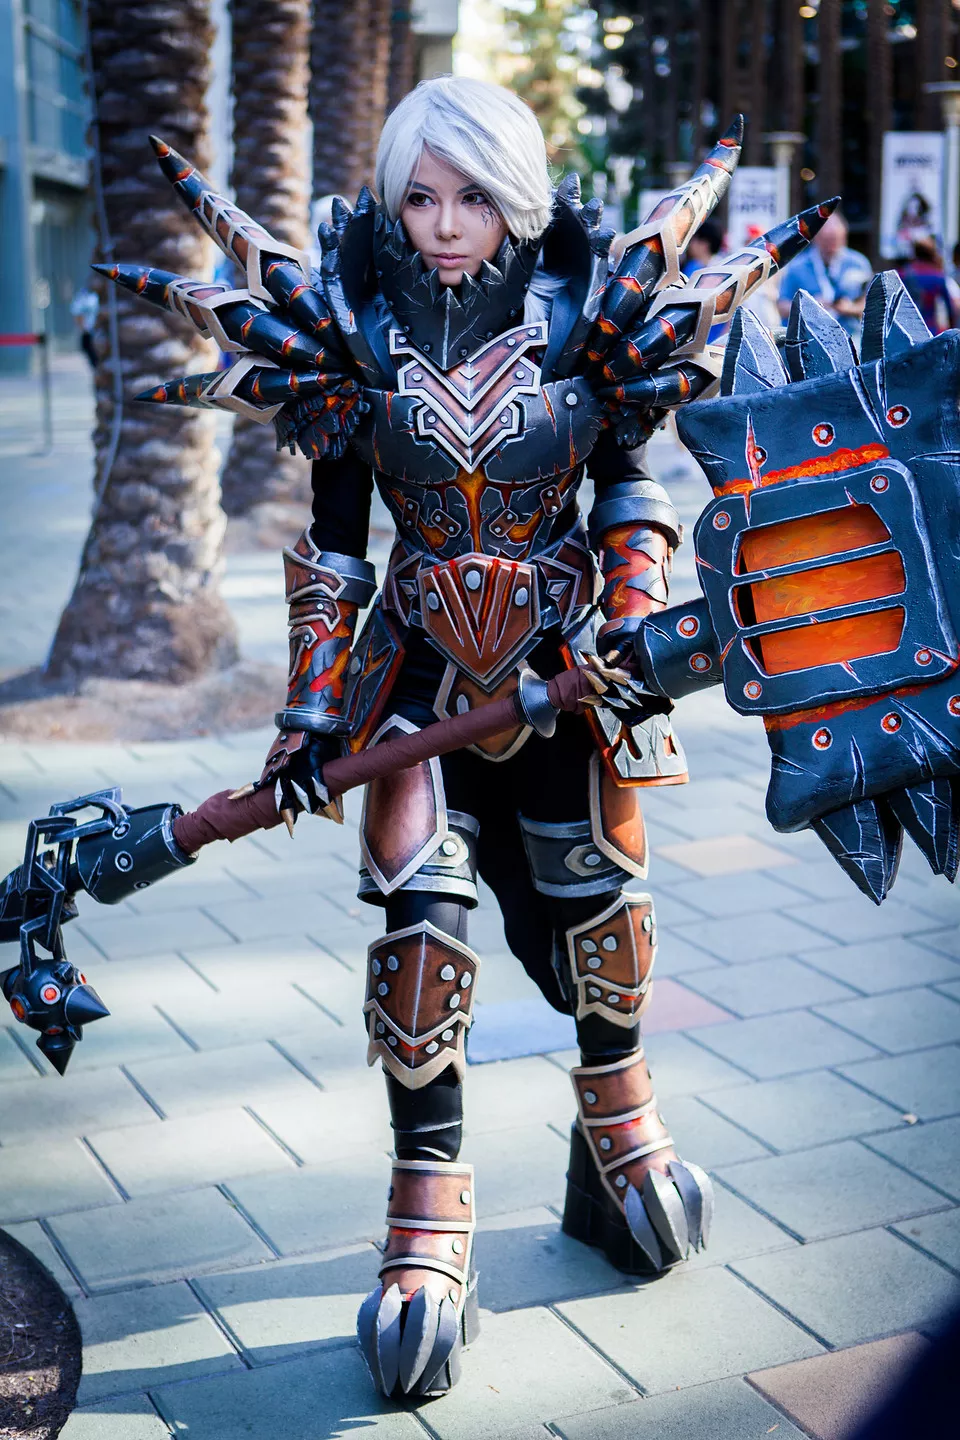 World of warcraft cosplay store